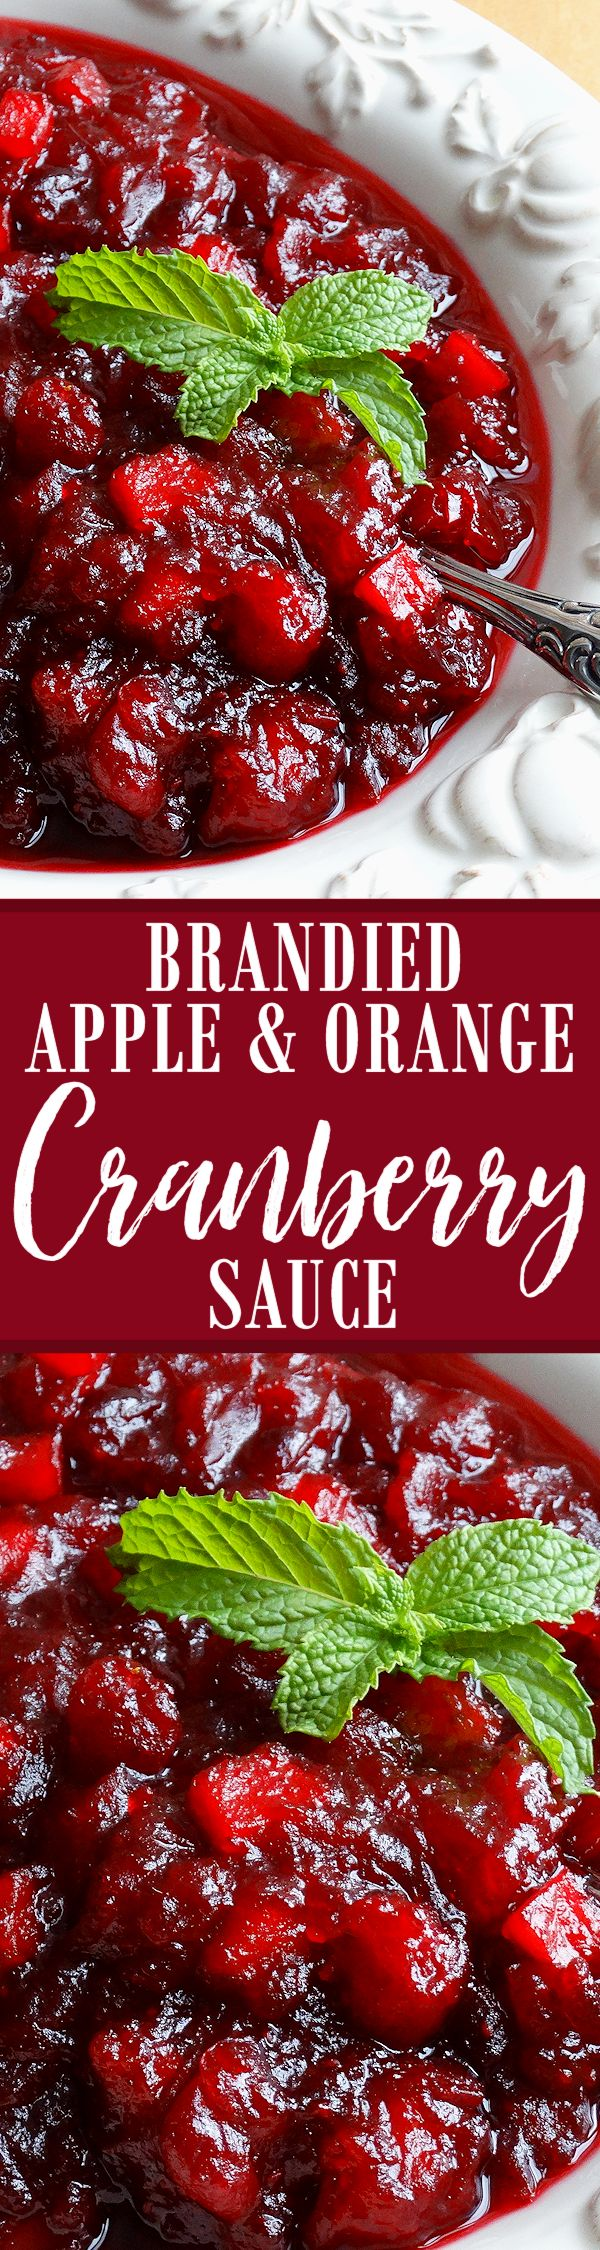 Brandied Apple and Orange Cranberry Sauce ~ The BEST Cranberry Sauce ever! Made with apple cider, chopped tart apple, fresh orange juice and zest, spiced and sweetened just right, with a splash of Grand Marnier® orange brandy. Everyone will rave and LOVE this recipe for the Thanksgiving and Christmas holidays!